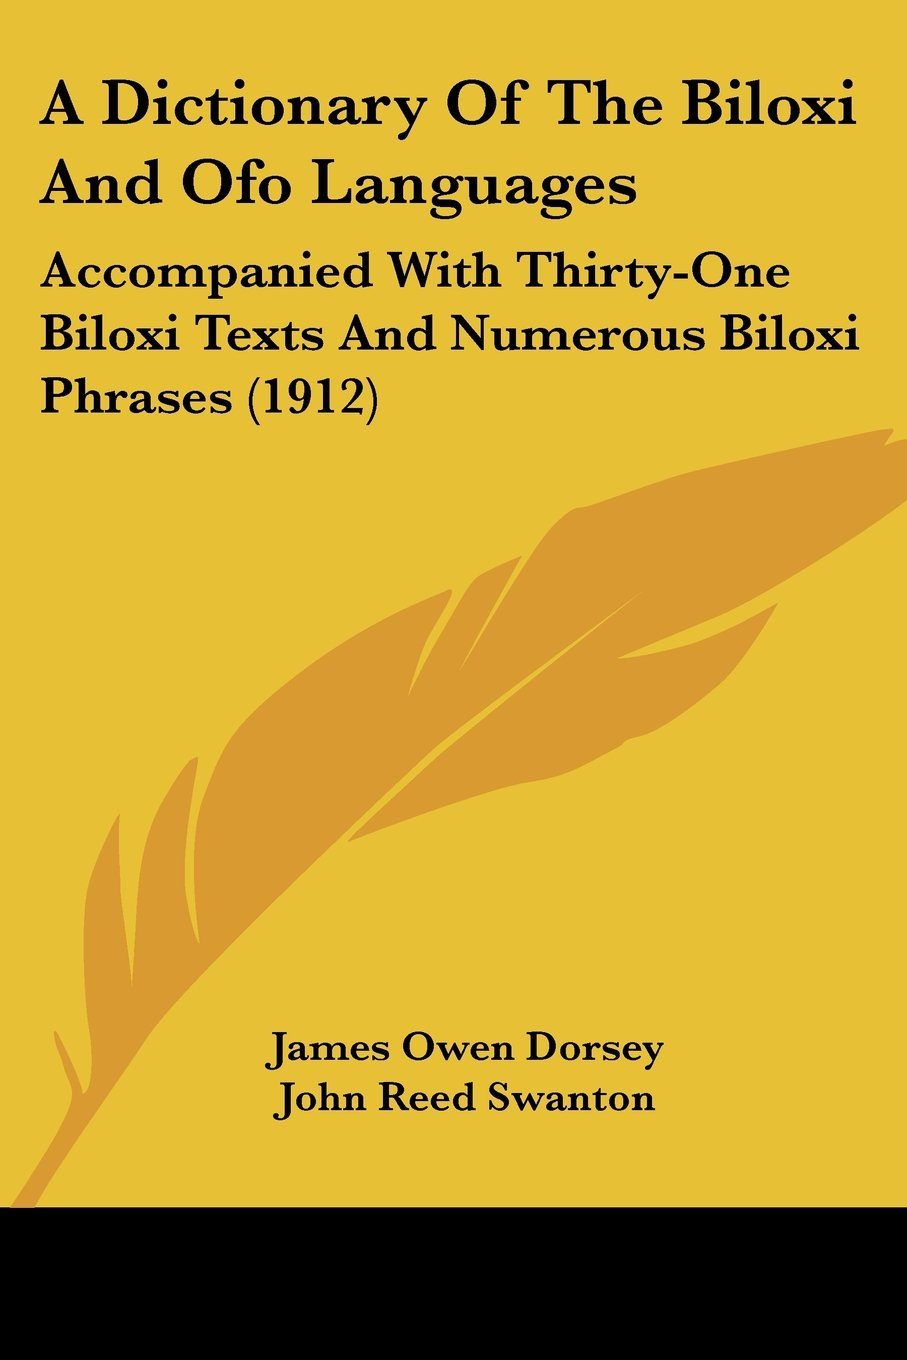 A Dictionary Of The Biloxi And Ofo Languages: Accompanied With Thirty-One Biloxi Texts And Numerous Biloxi Phrases (1912) ebook